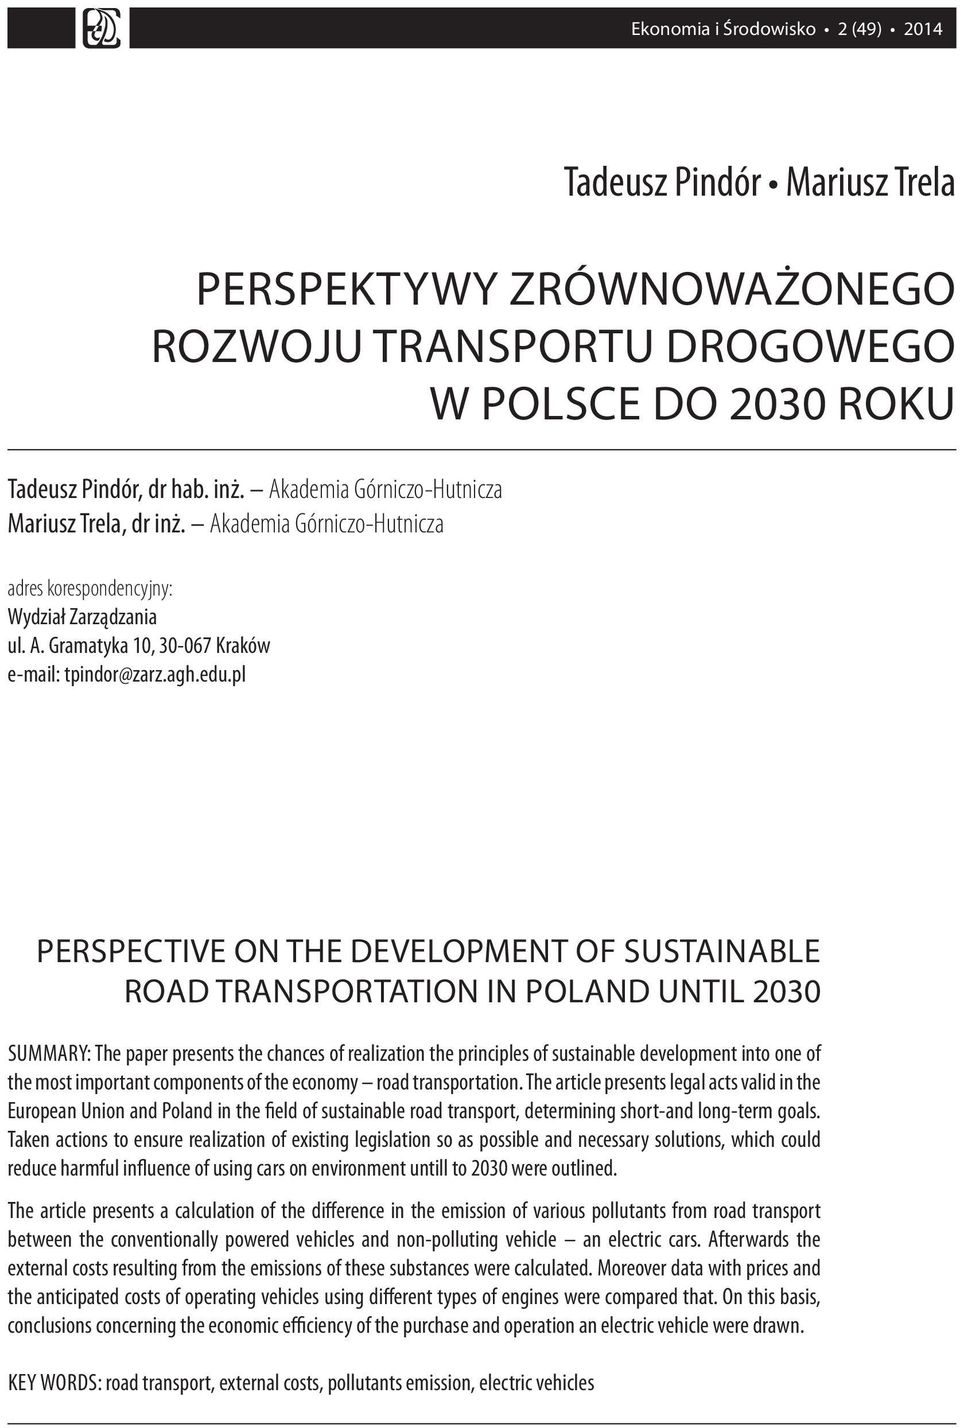 pl PERSPECTIVE ON THE DEVELOPMENT OF SUSTAINABLE ROAD TRANSPORTATION IN POLAND UNTIL 2030 SUMMARY: The paper presents the chances of realization the principles of sustainable development into one of